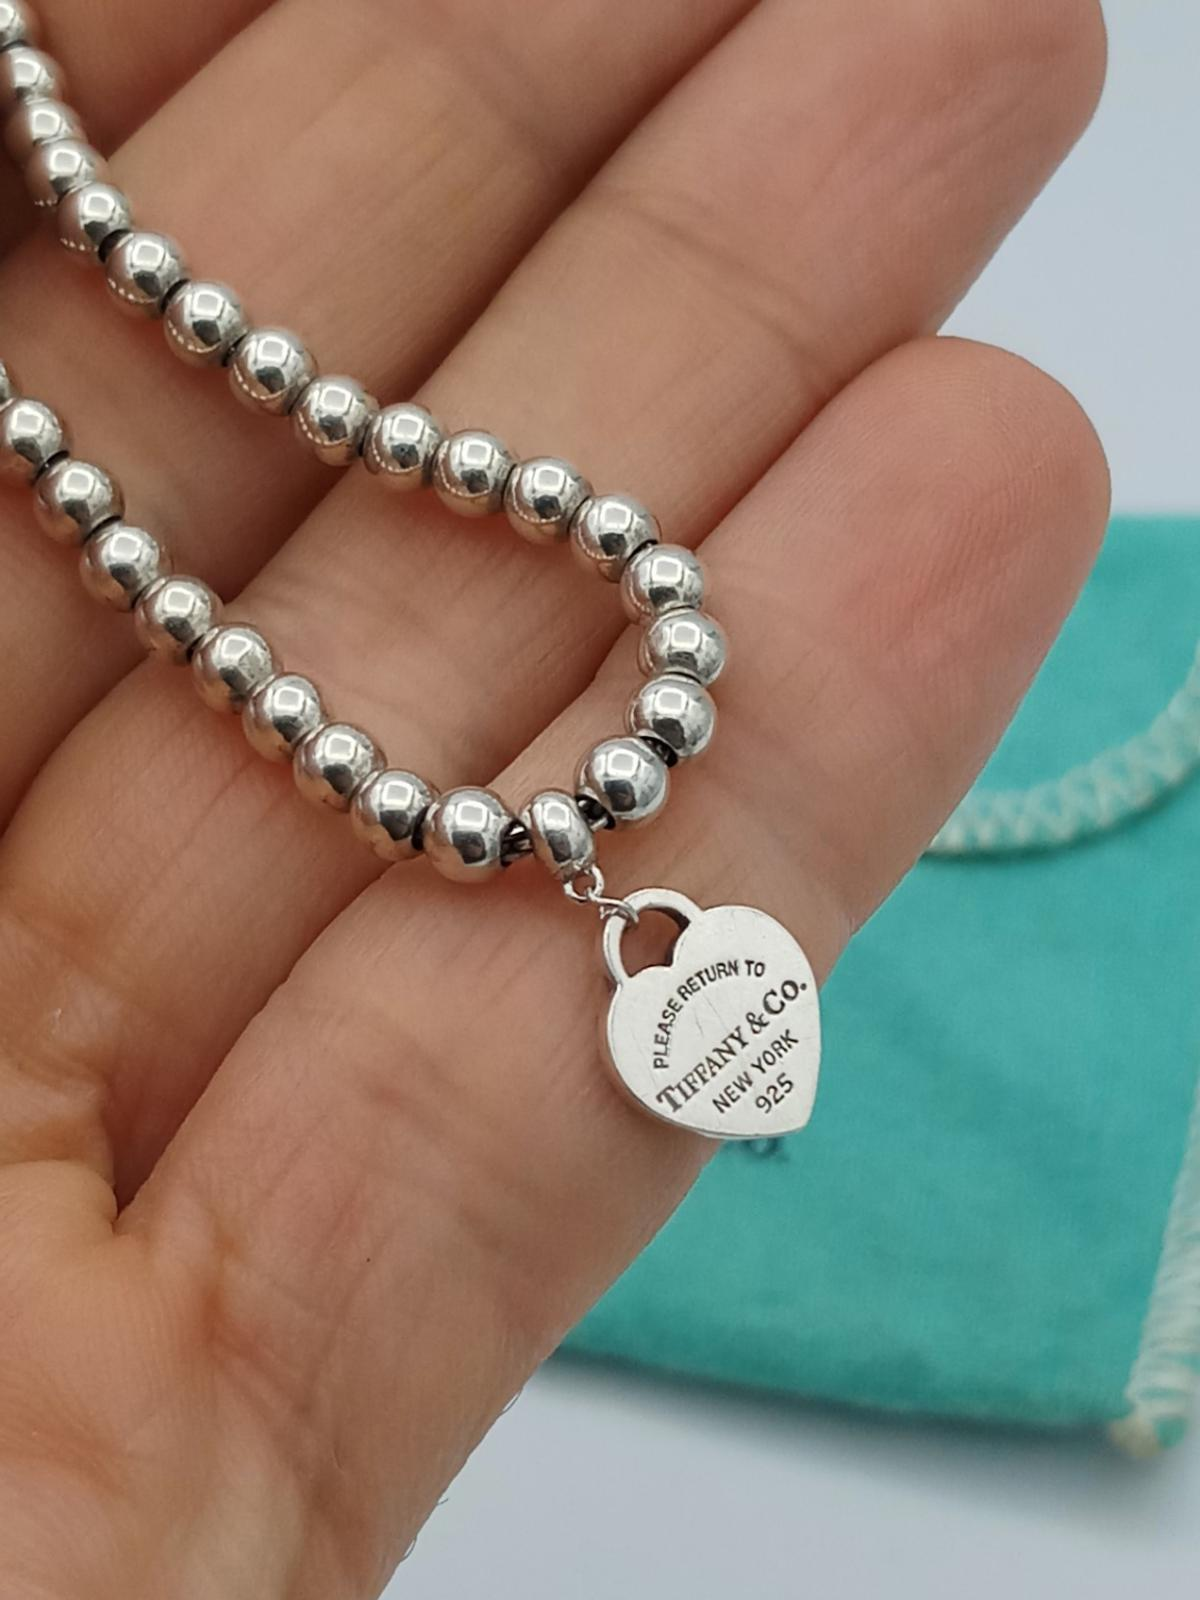 cce110bed5093 Genuine Tiffany & Co Bead Heart Tag Bracelet in NE5 Tyne for £105.00 ...